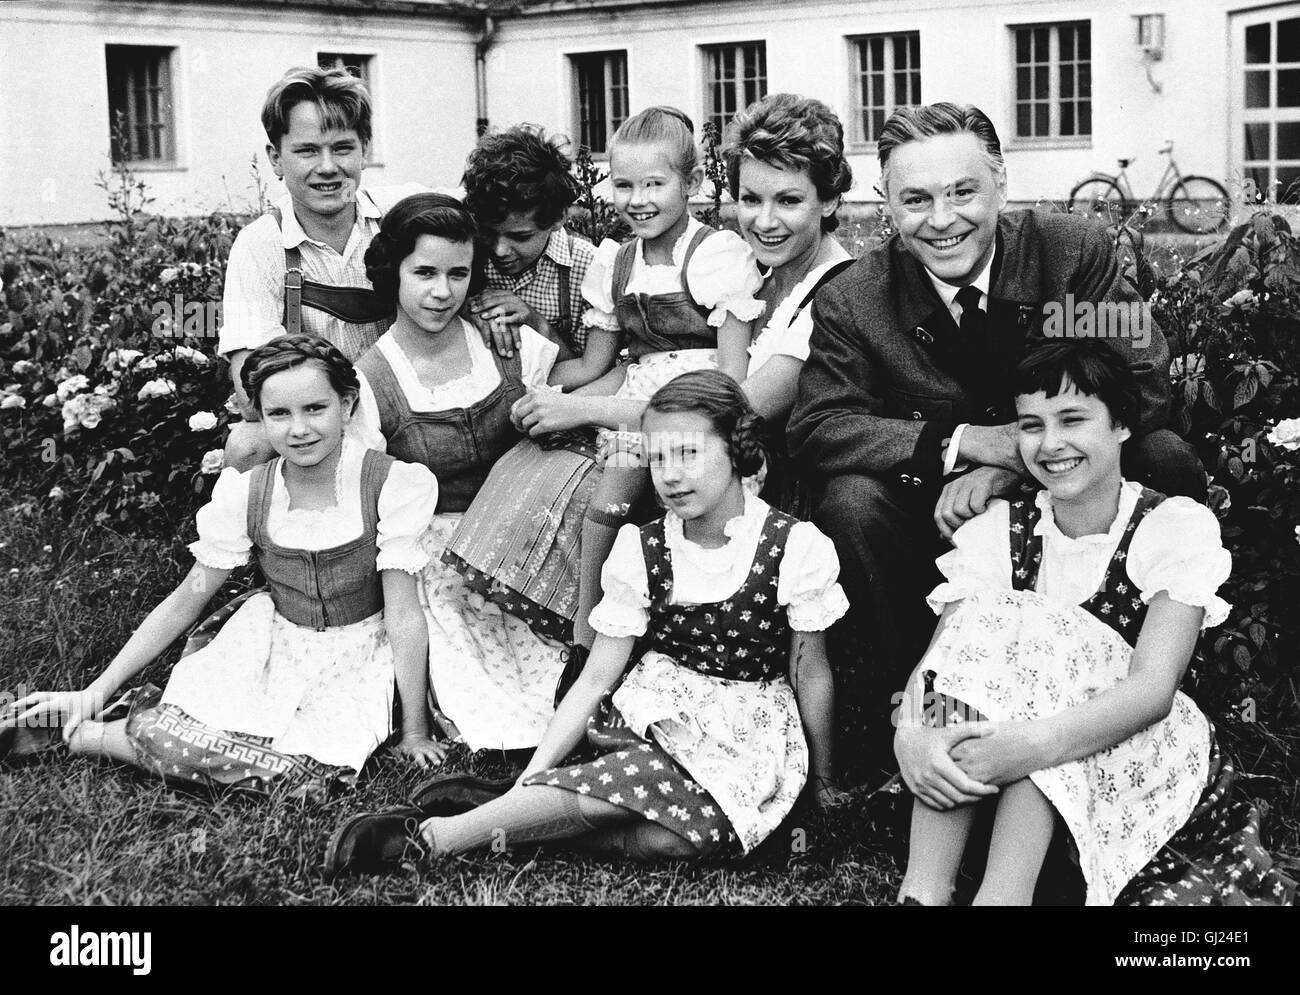 Trapp Familie High Resolution Stock Photography And Images Alamy